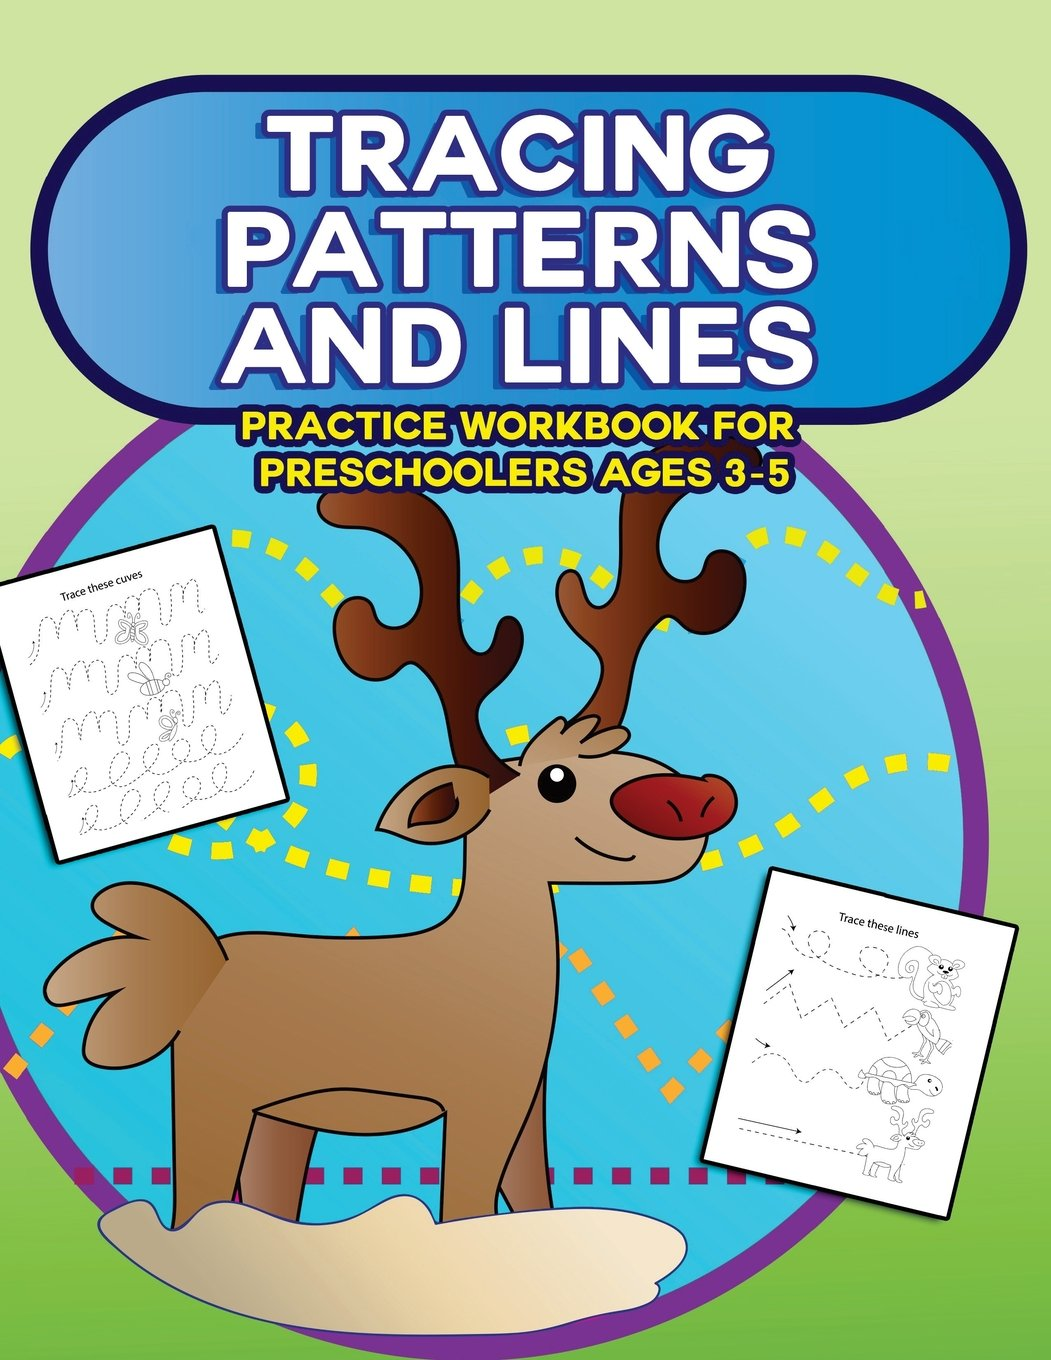 Amazon.com: Tracing Patterns and Lines Practice Workbook for ...